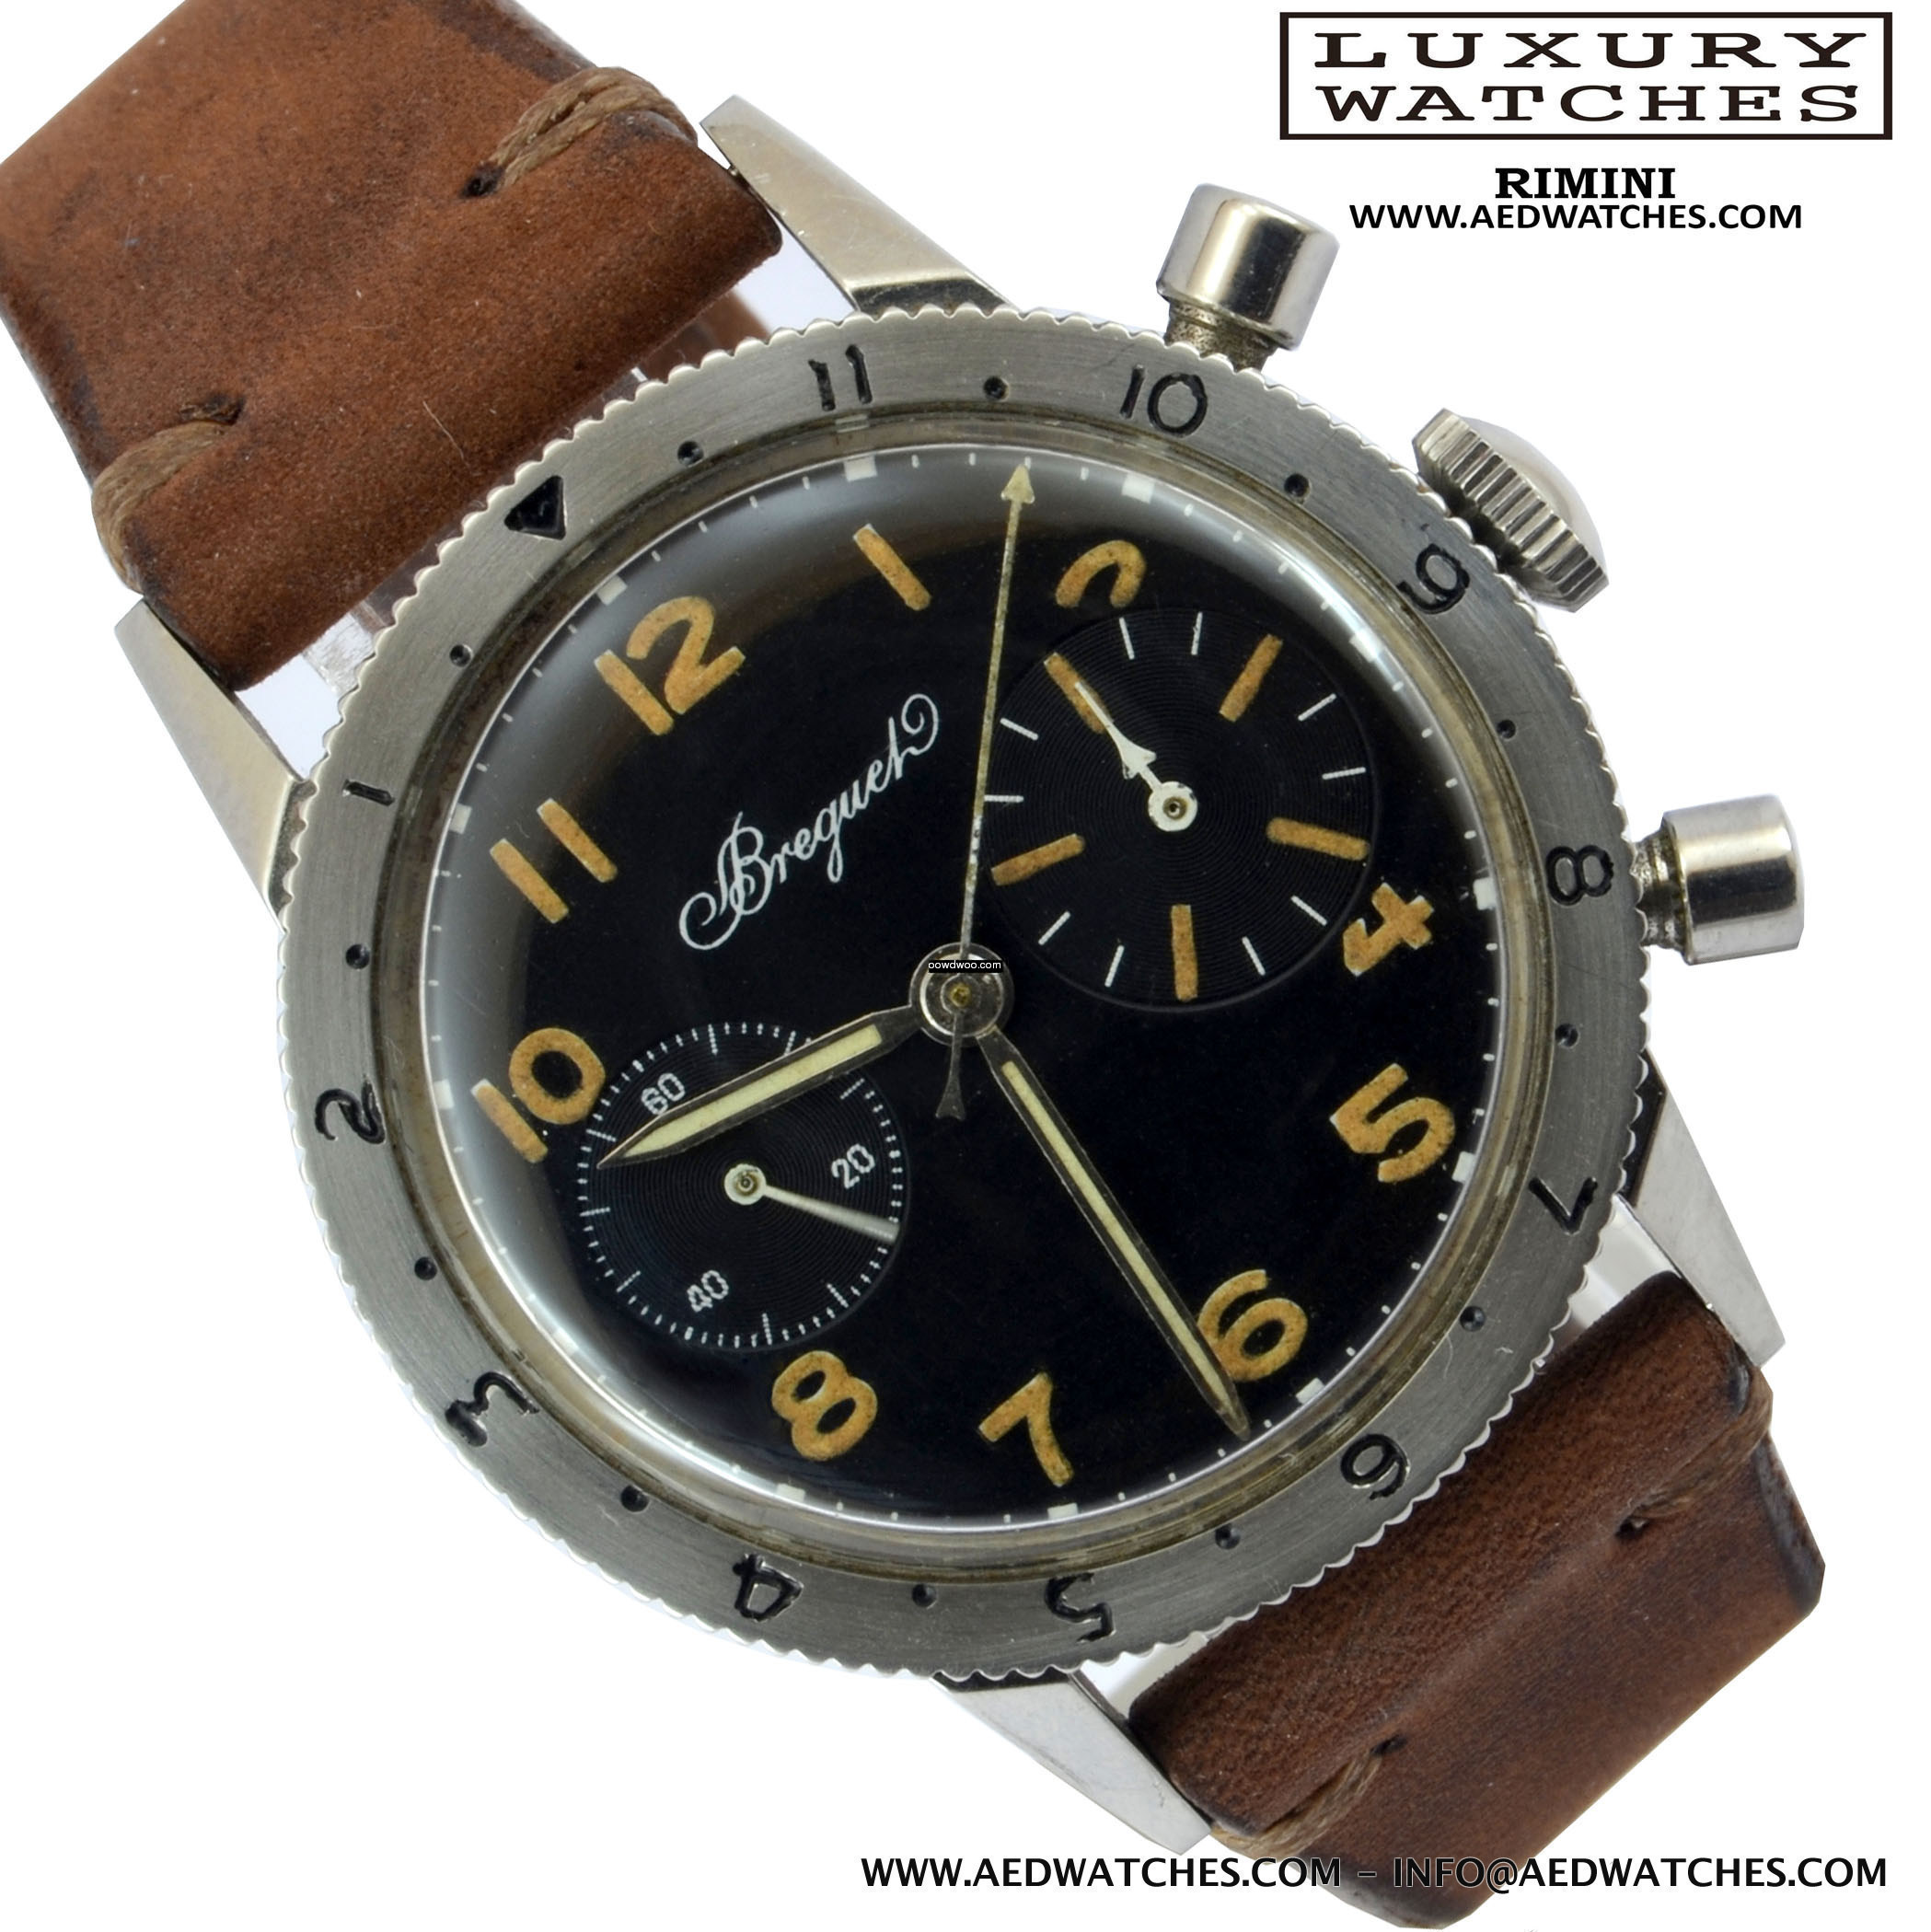 DODANE by Breguet TYPE XX Air Force Fran...